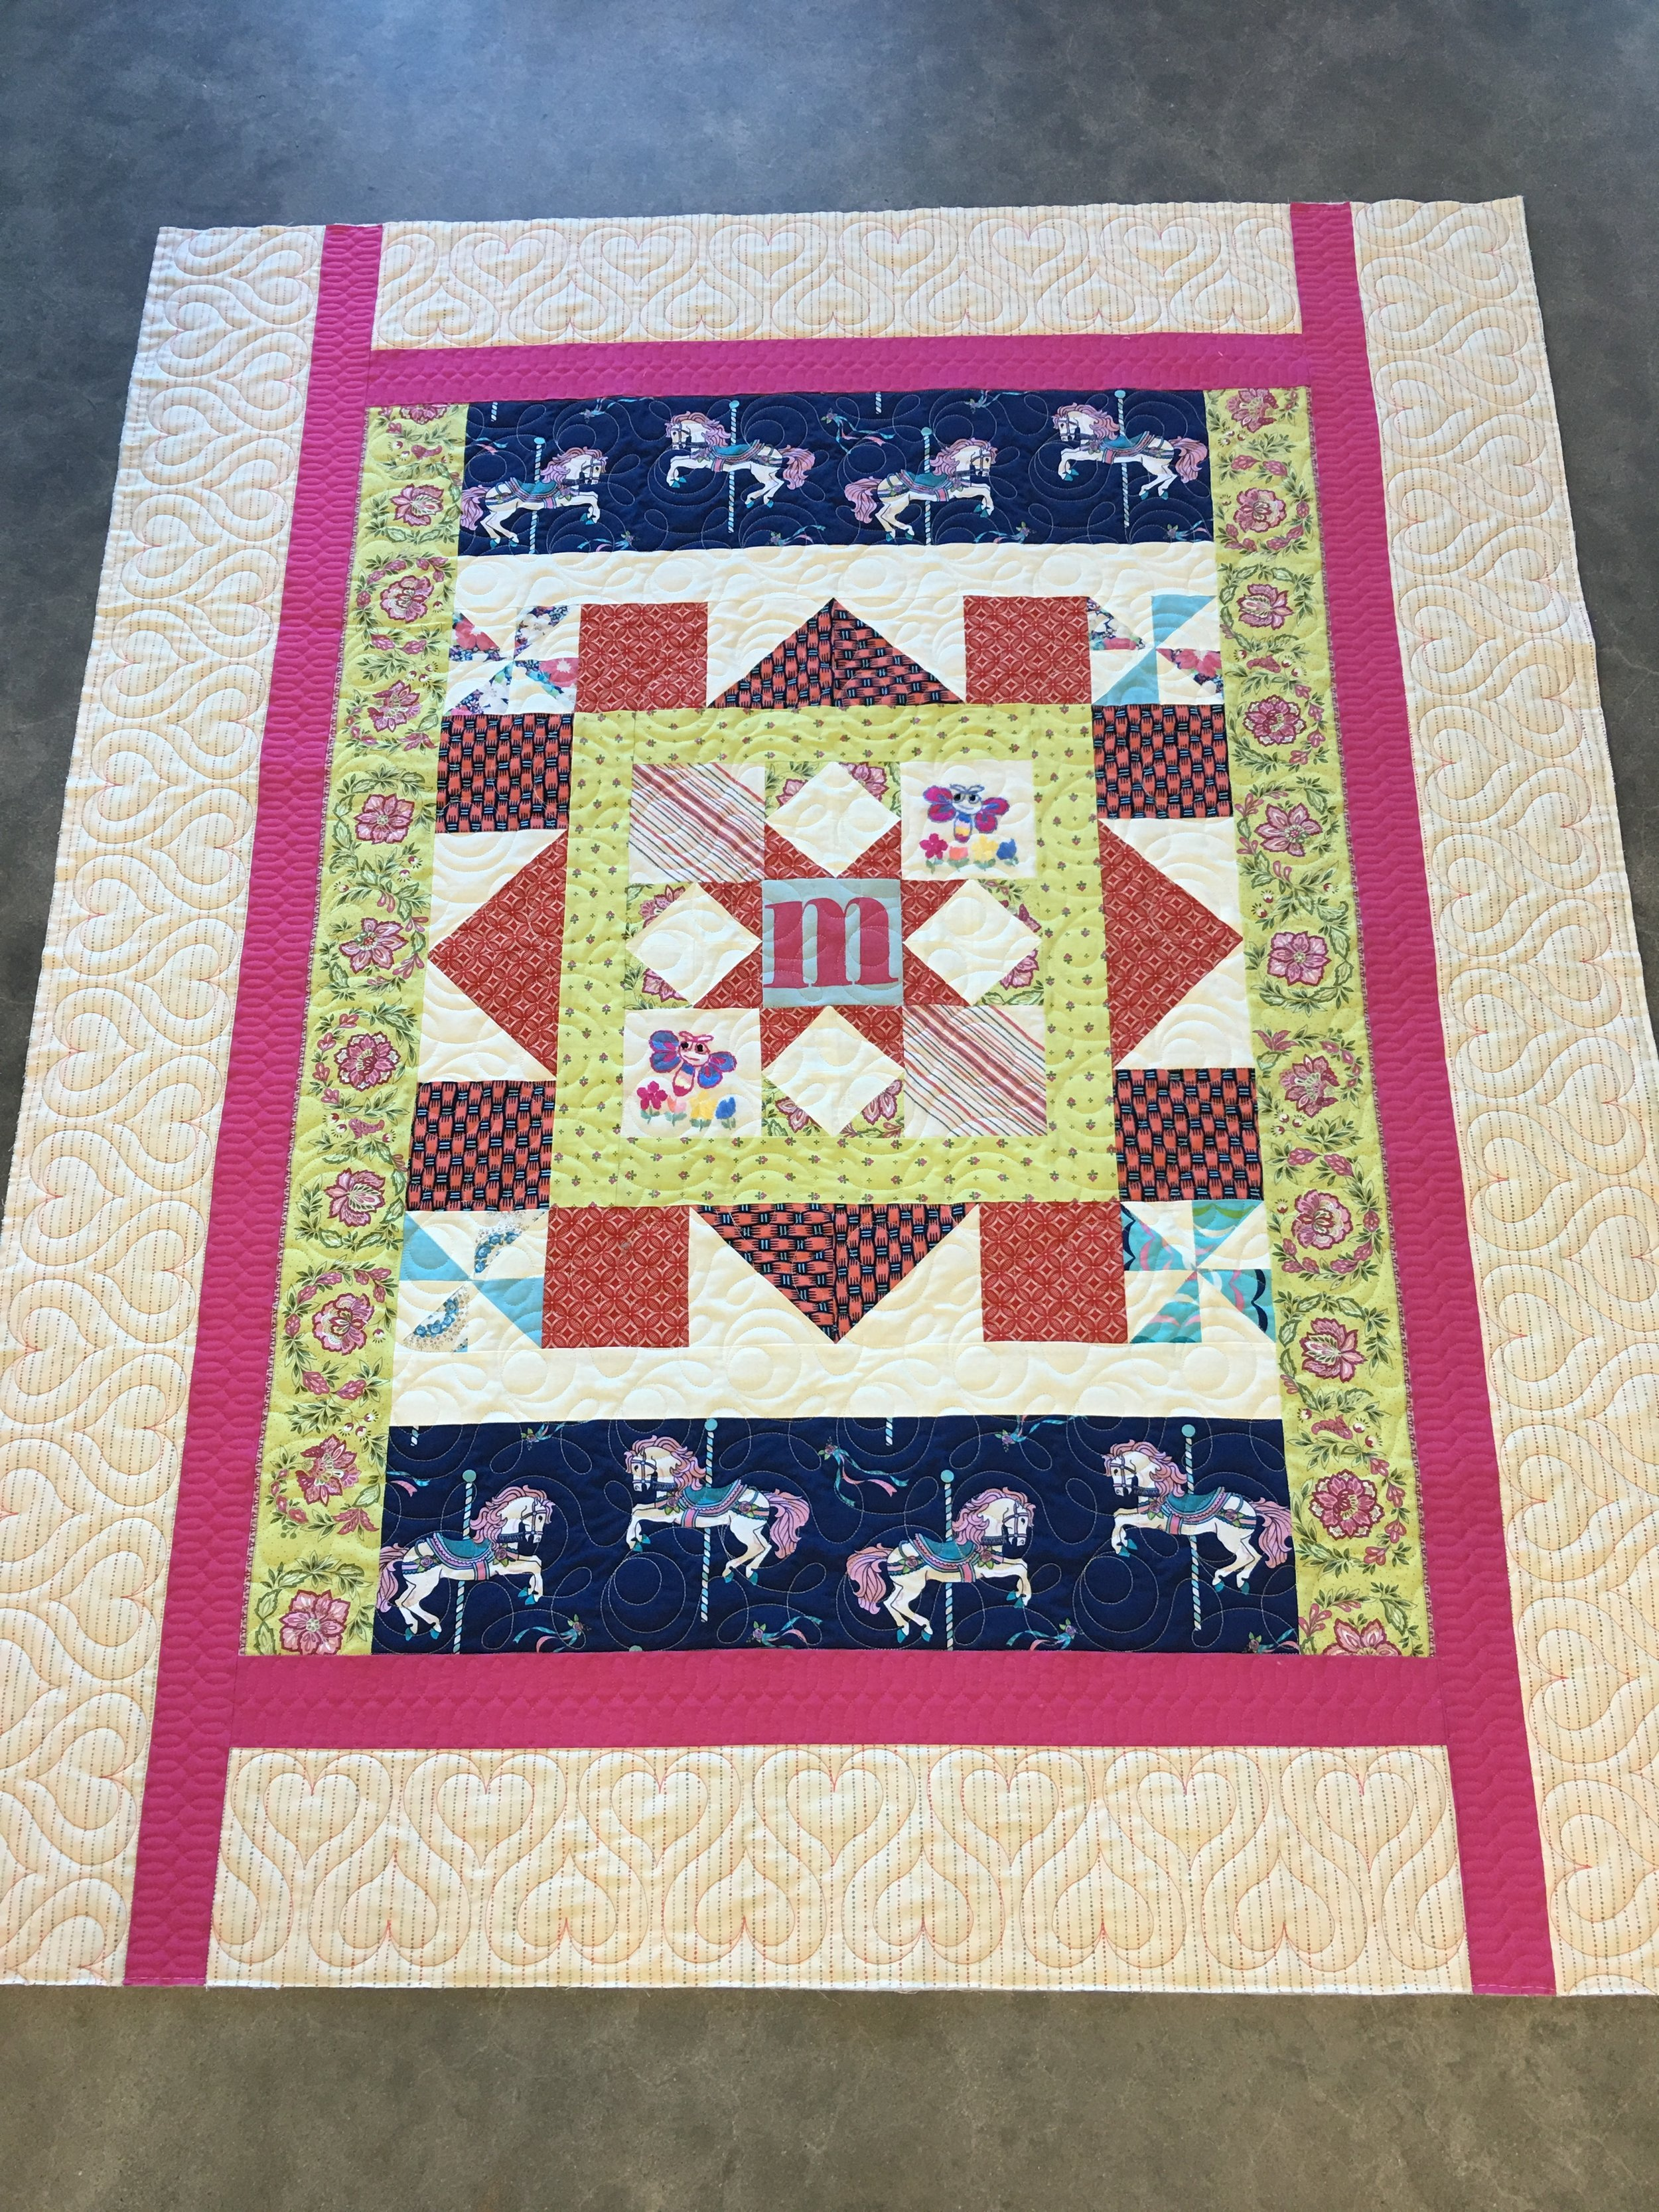 Inside edge-to-edge design with separate border designs